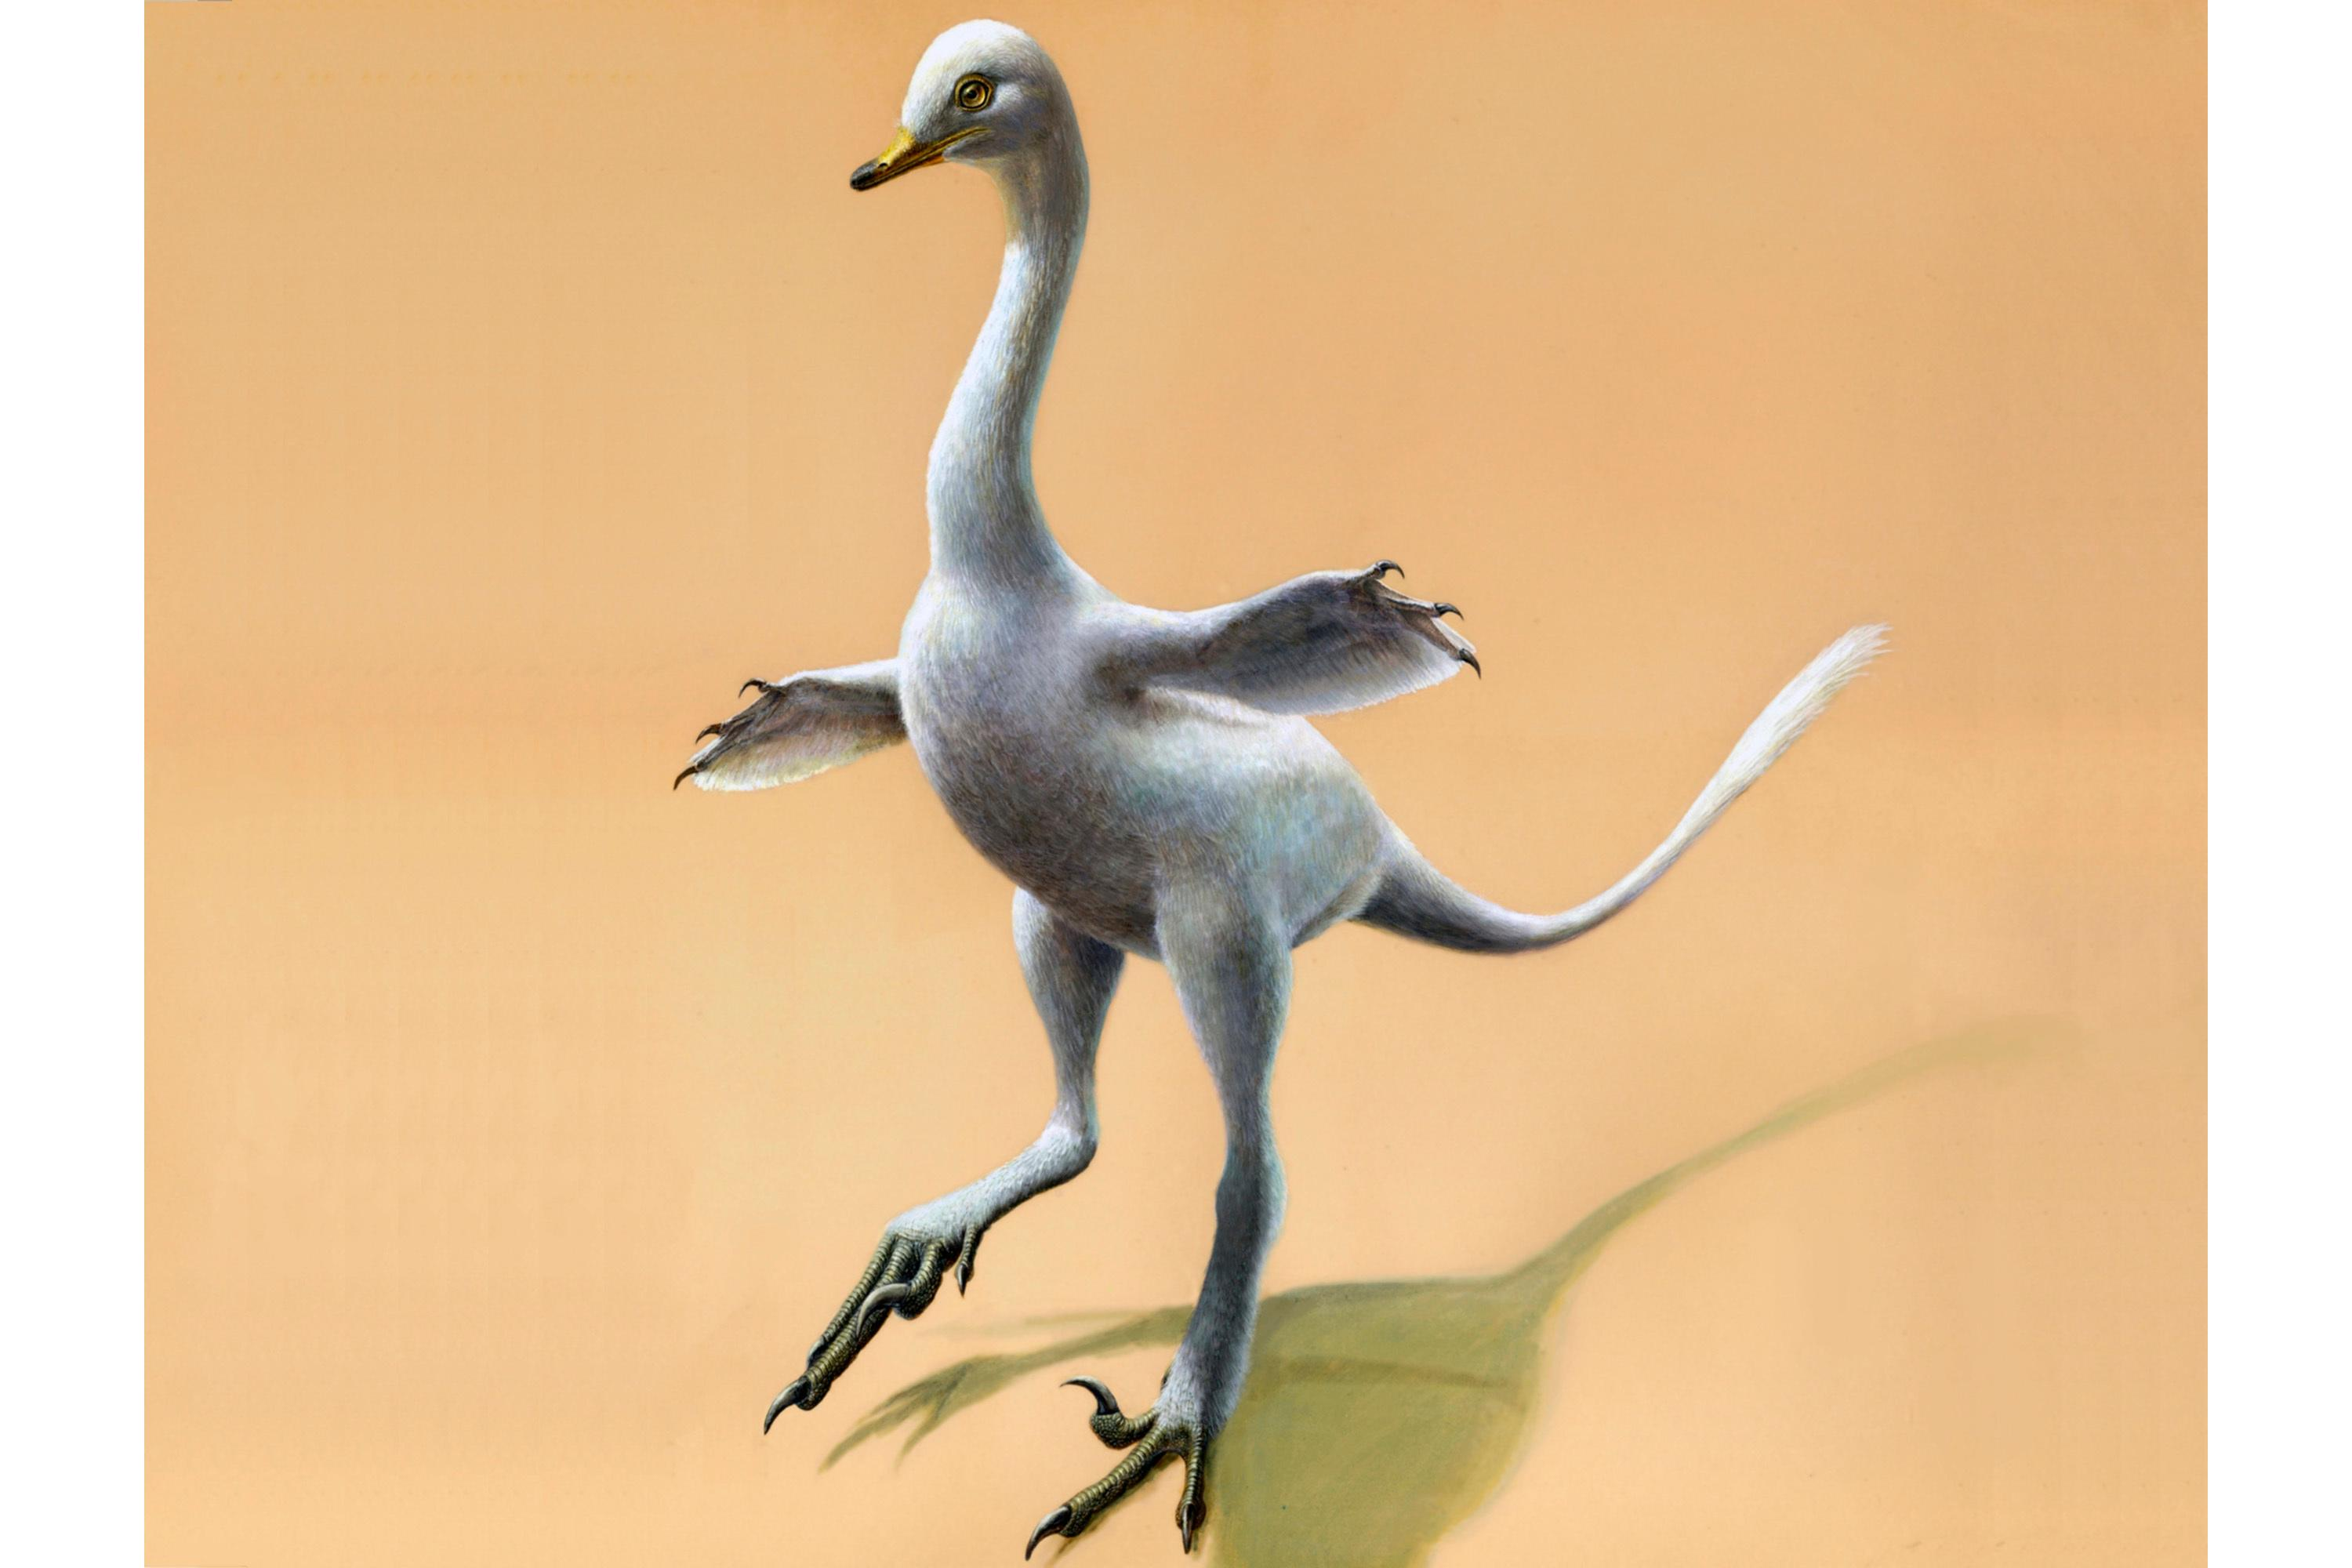 This illustration provided by Lukas Panzarin, with Andrea Cau for scientific supervision, shows a Halszkaraptor escuilliei dinosaur. The creature, about 18 inches (45 centimeters) tall, had a bill like a duck but teeth like a croc's, a swan-like neck and killer claws. (Lukas Panzarin via AP)